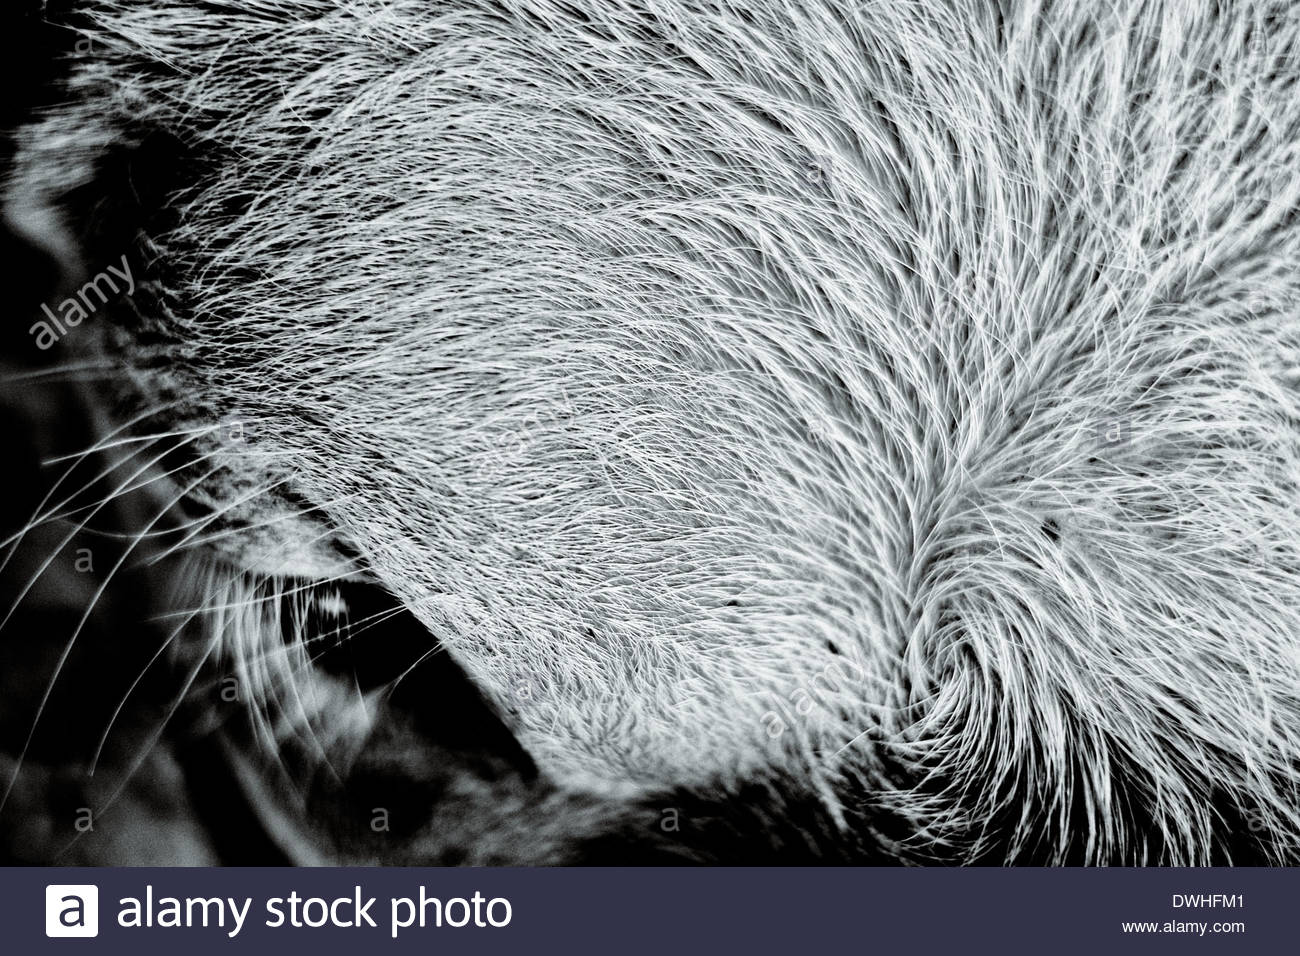 Close up view of the head of a bullock calf, Bangkok, Thailand, South East Asia. - Stock Image